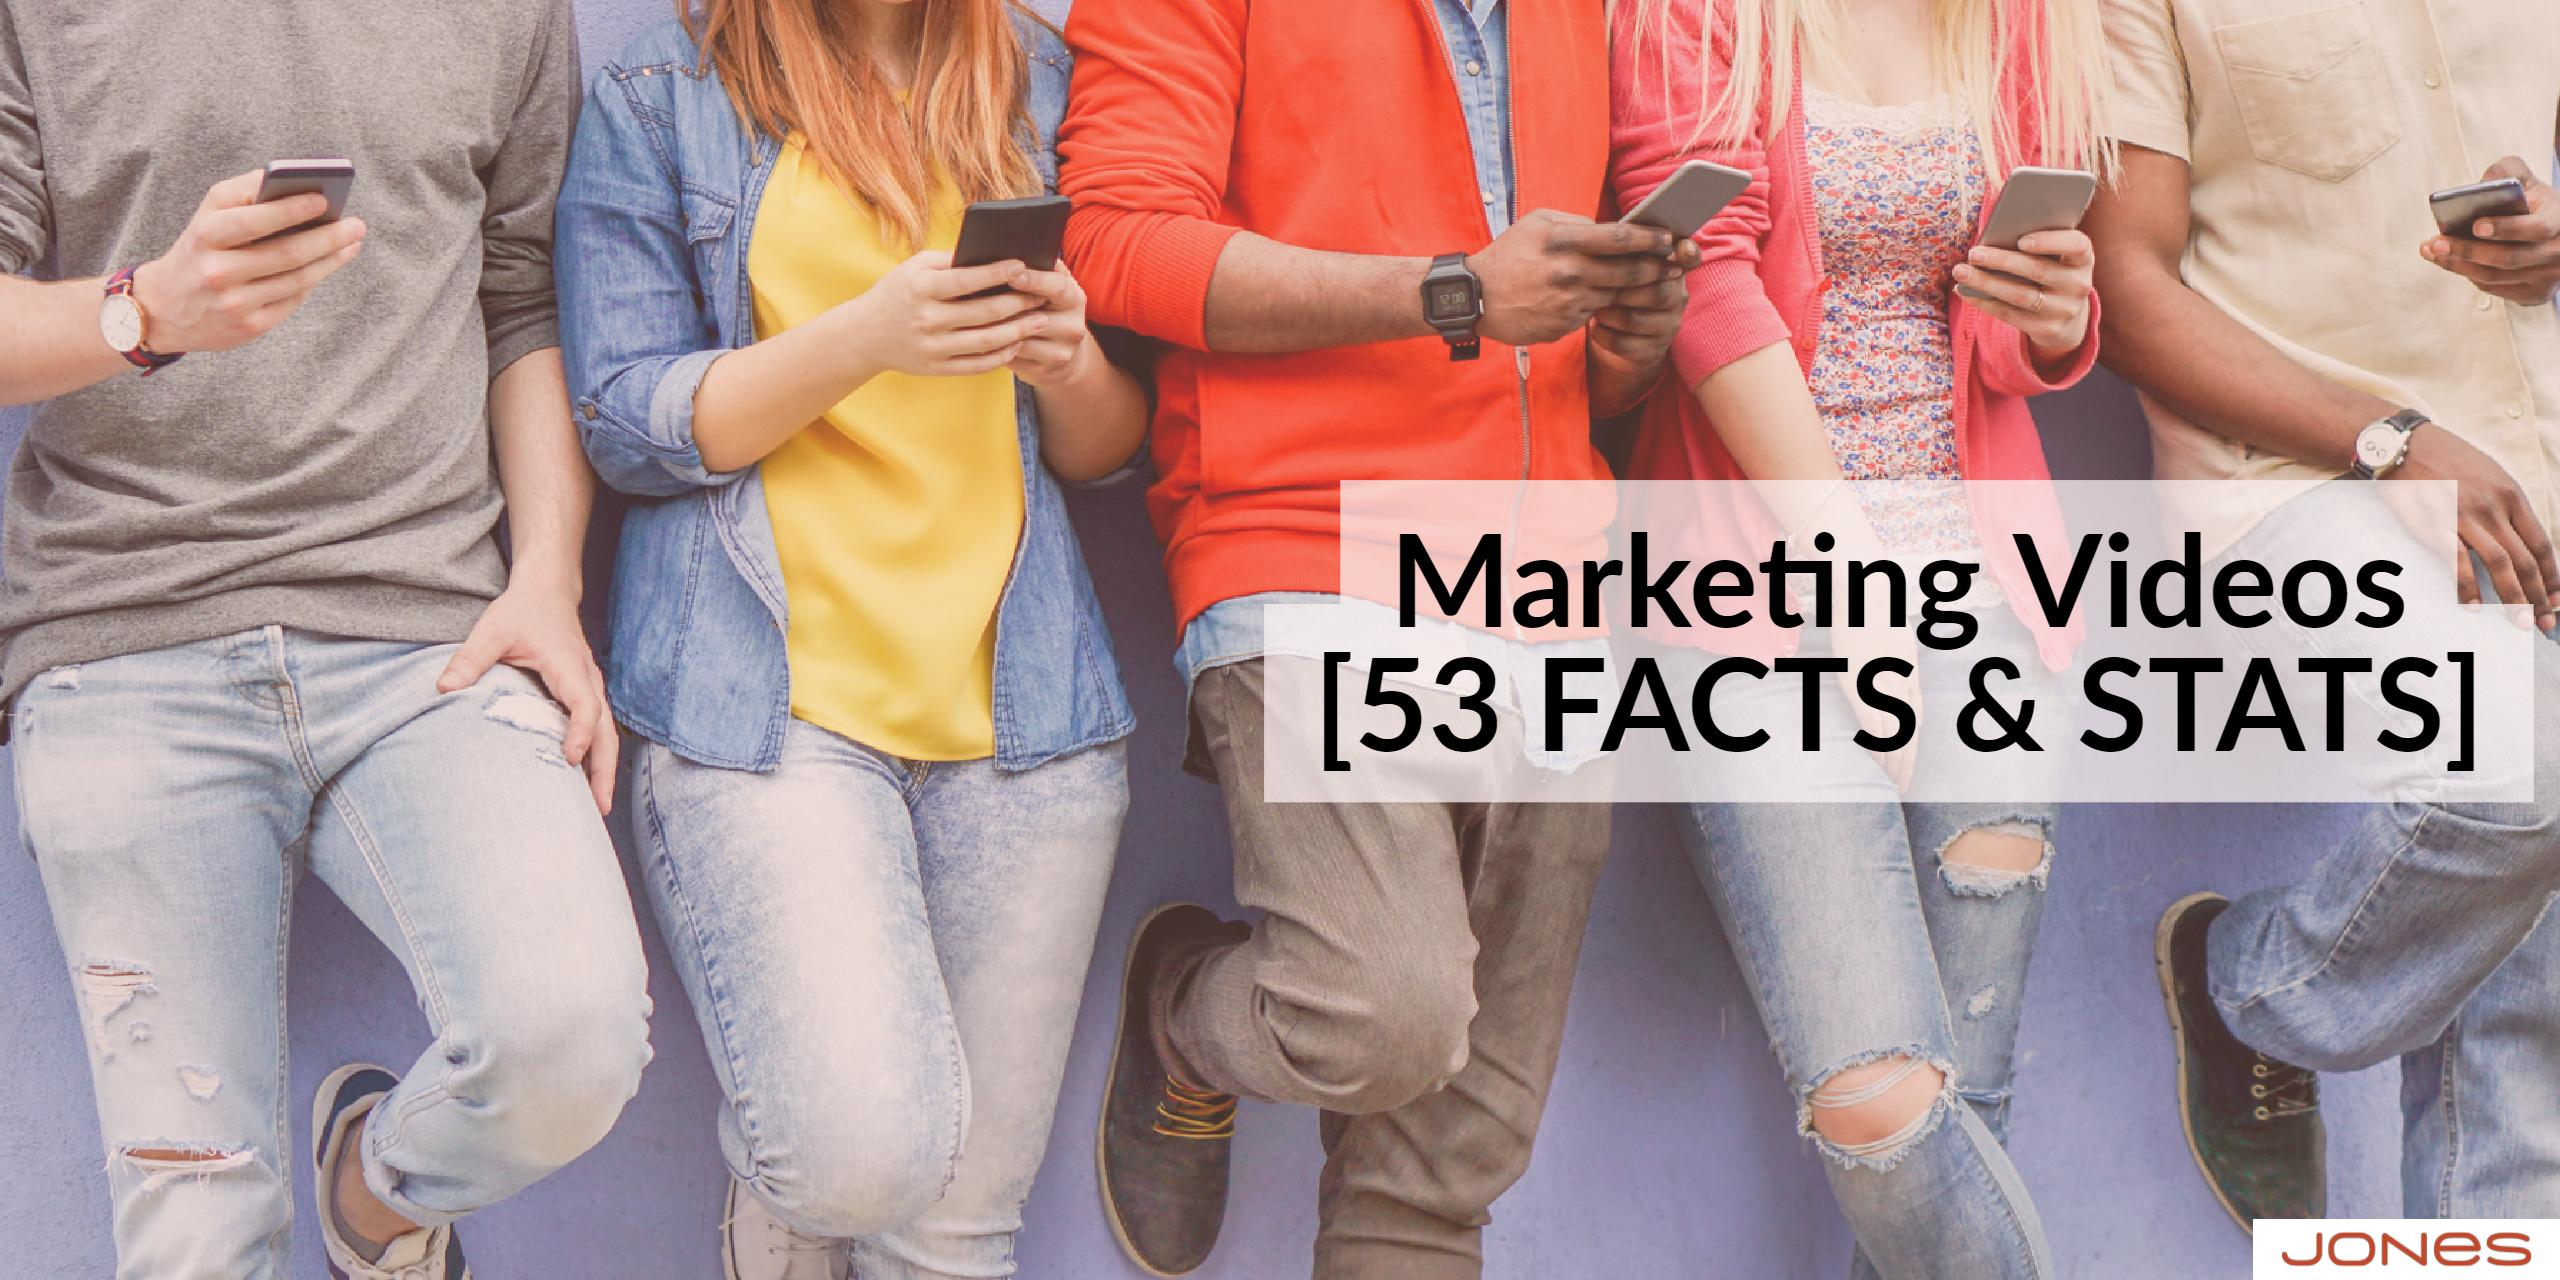 53 Facts and Stats About Marketing Videos